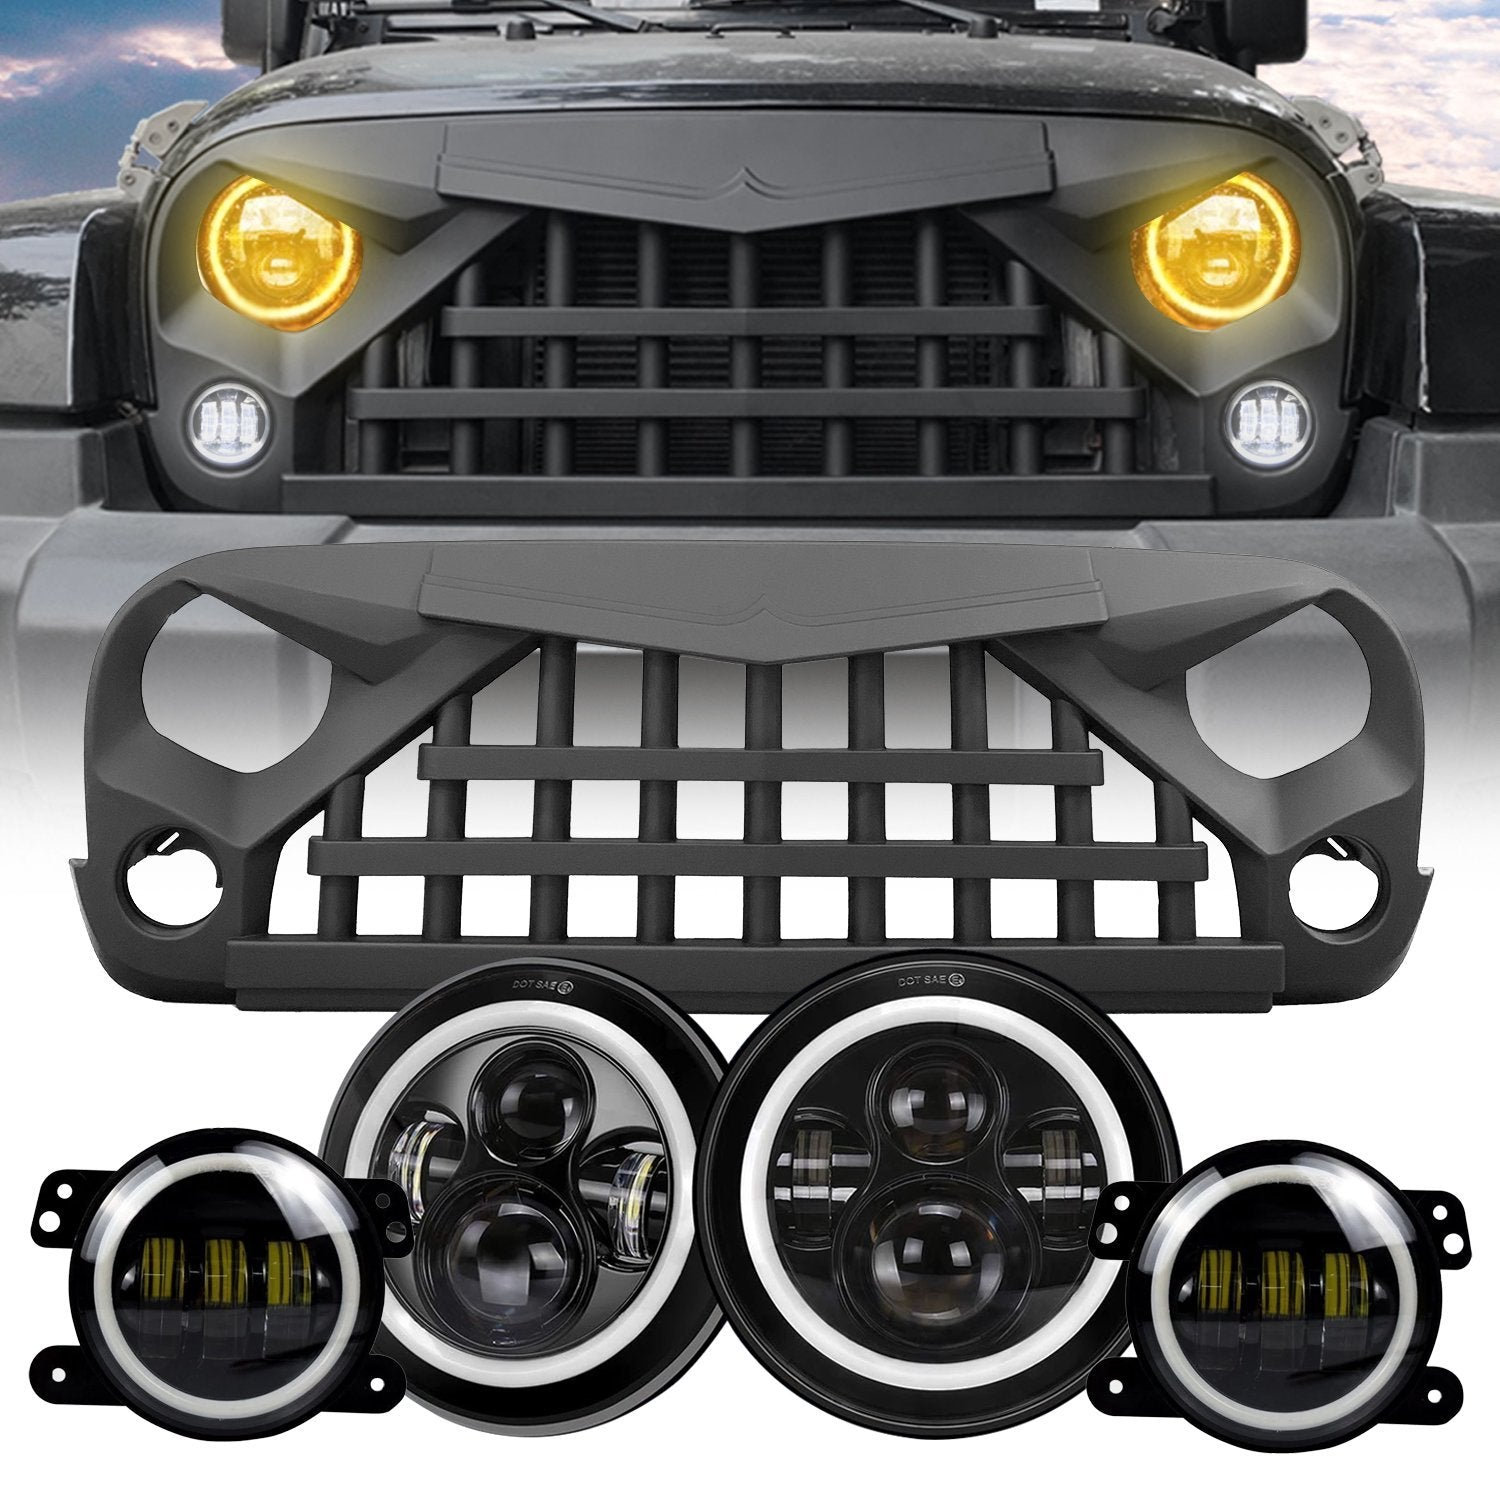 Warrior Grille & Halo Headlights & Halo Fog Lights Combo